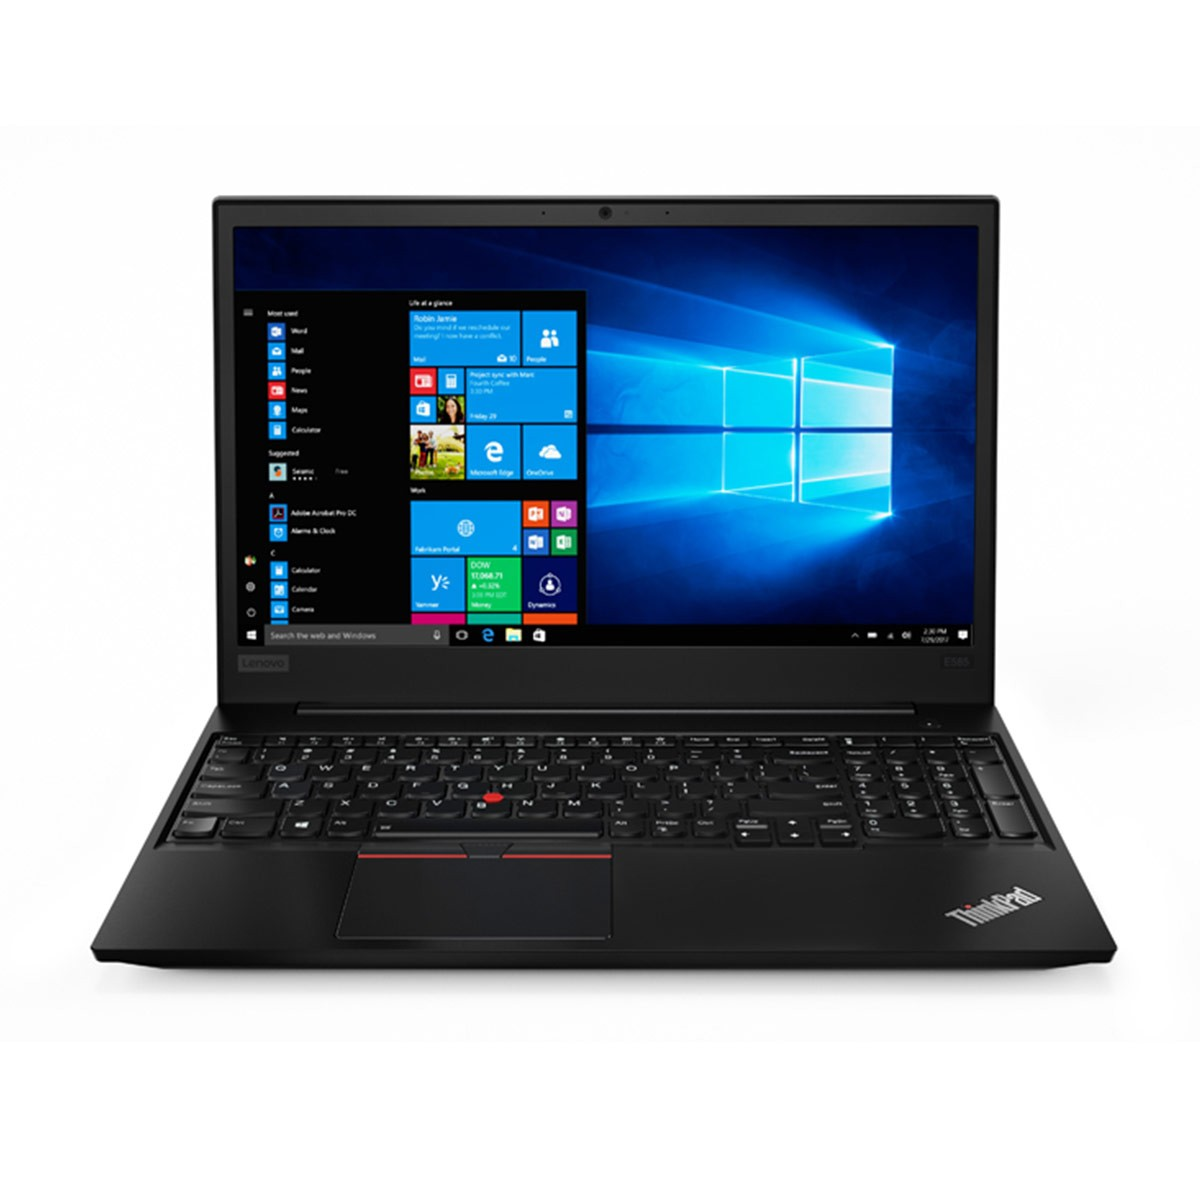 (EOL) Lenovo™ ThinkPad® E585 Notebook Modell 20KV-000D